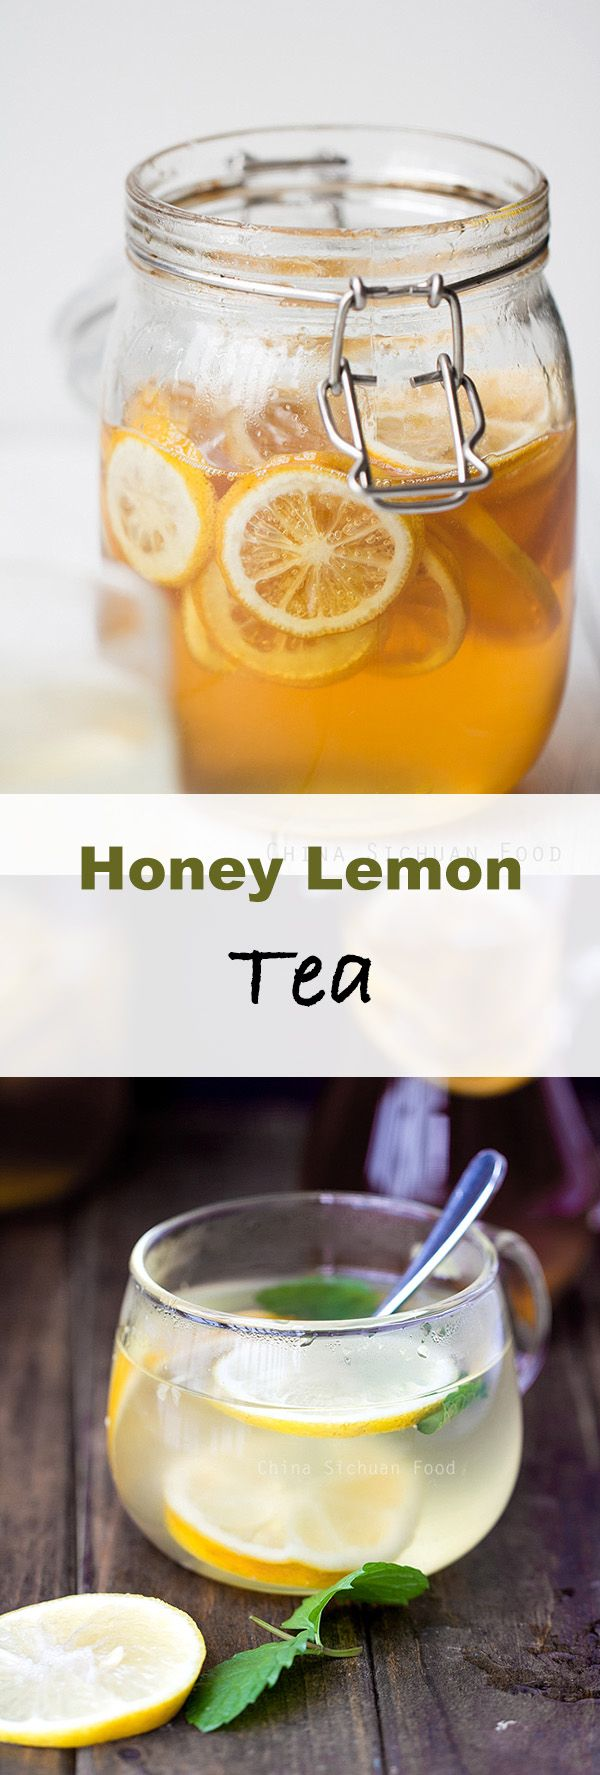 Healthy Honey Lemon tea